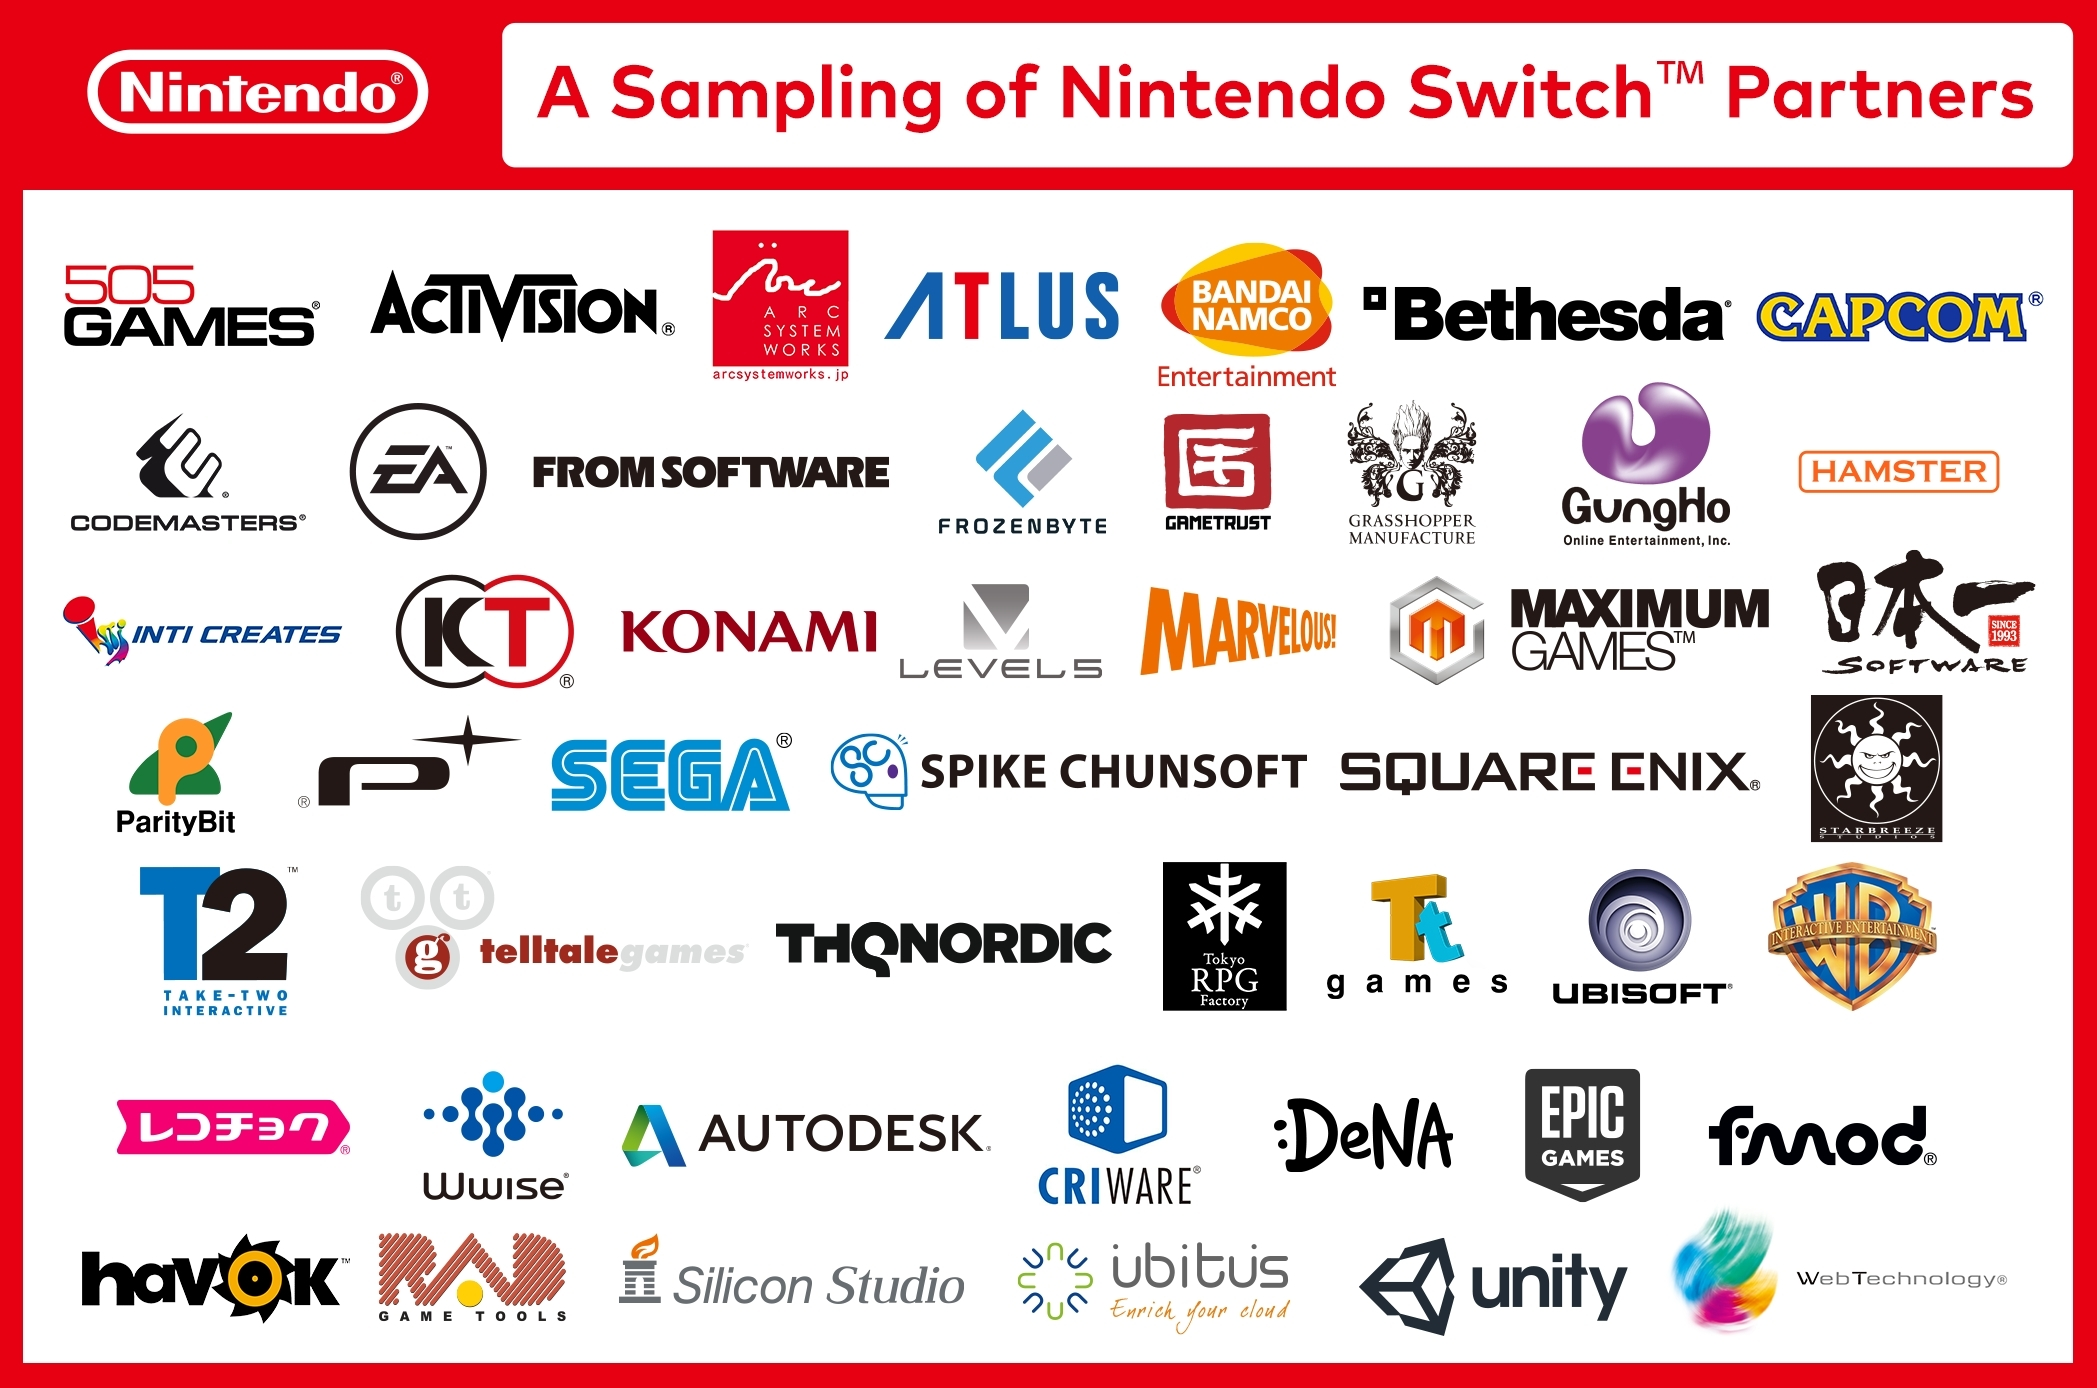 The developers and publishers on board with the Nintendo Switch